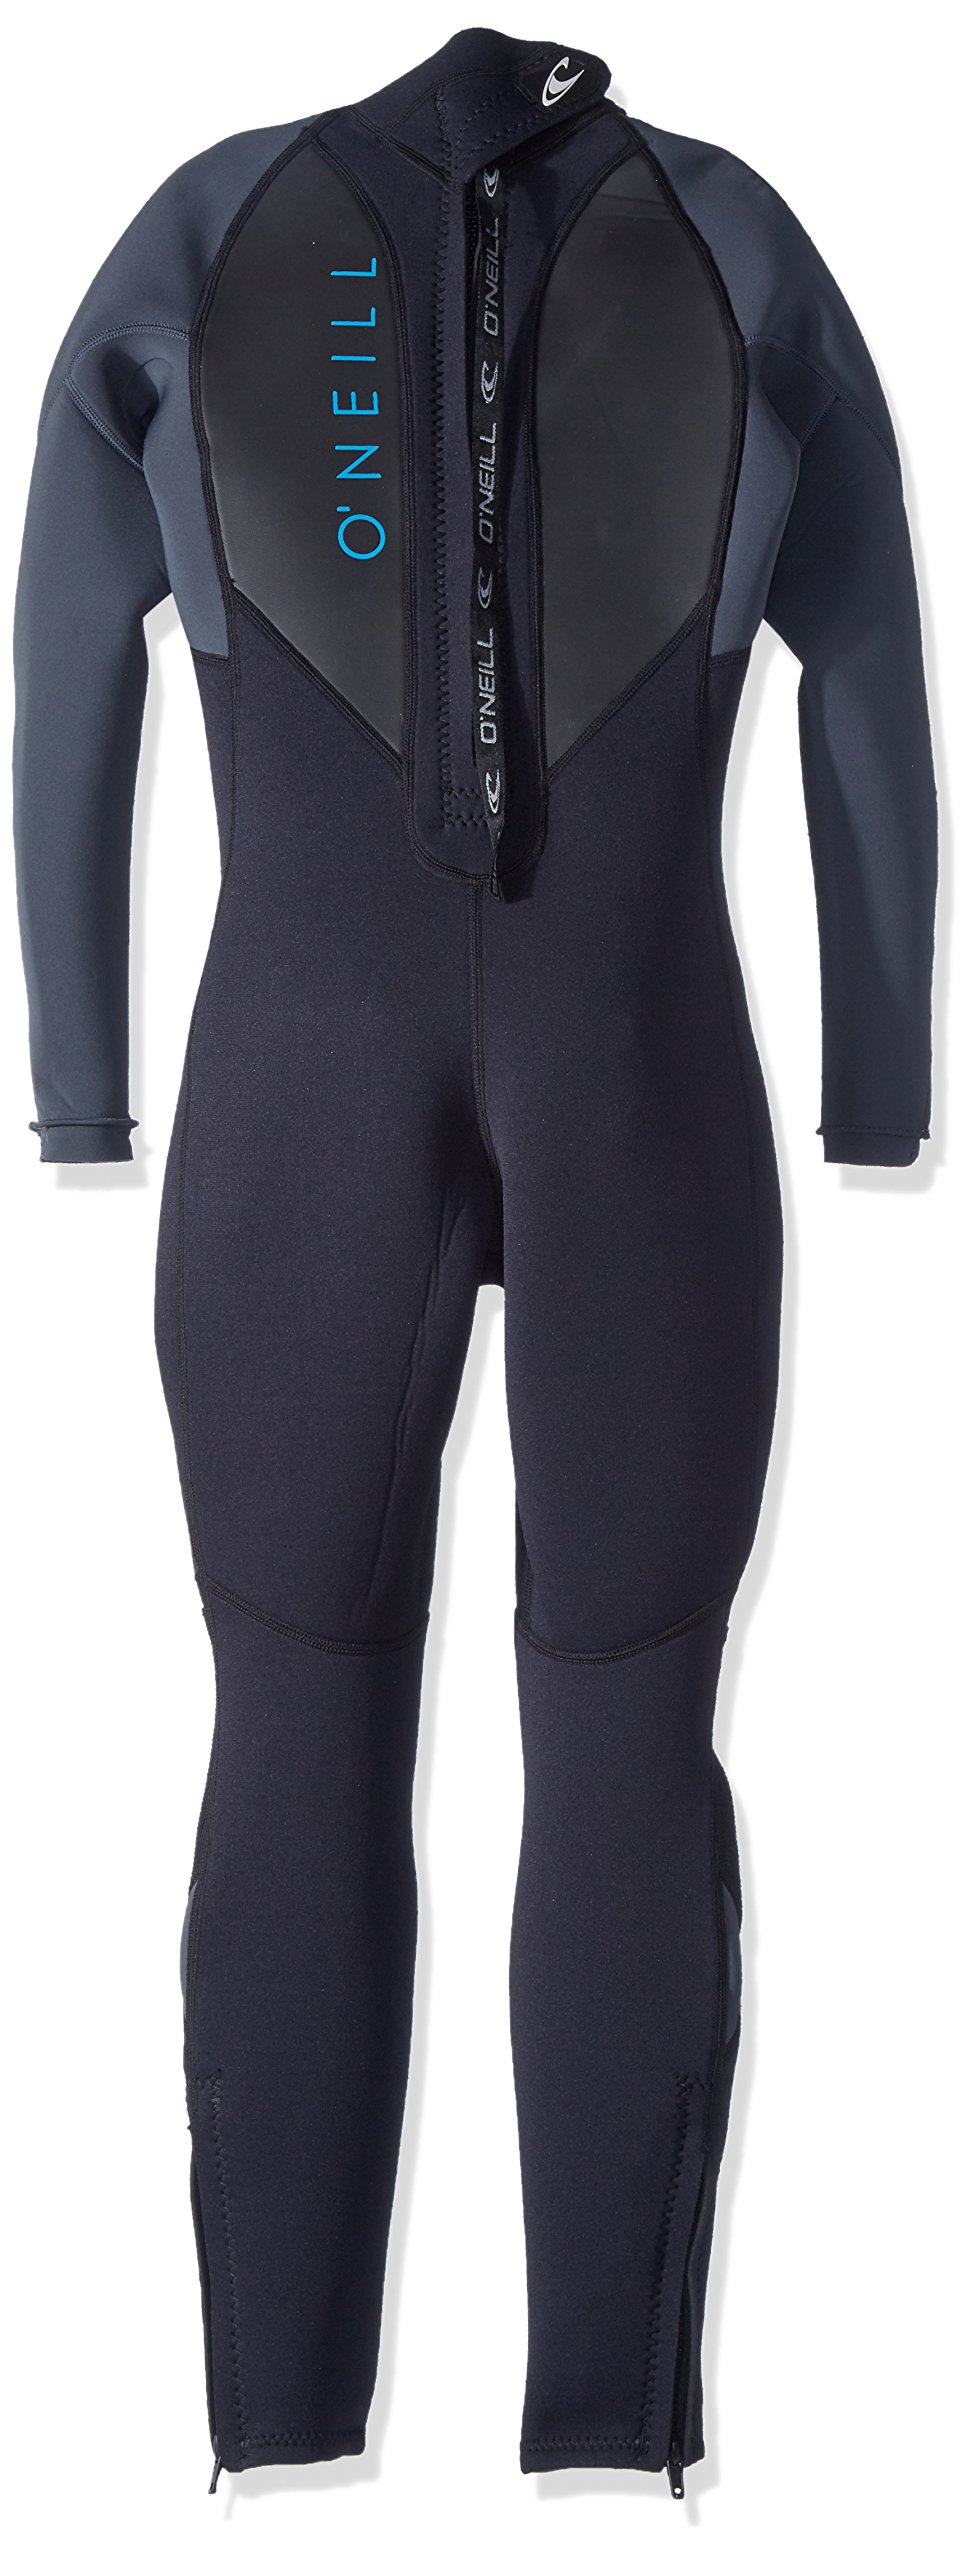 O'Neill Youth Reactor-2 3/2mm Back Zip Full Wetsuit, Black/Graphite, 6 by O'Neill Wetsuits (Image #2)